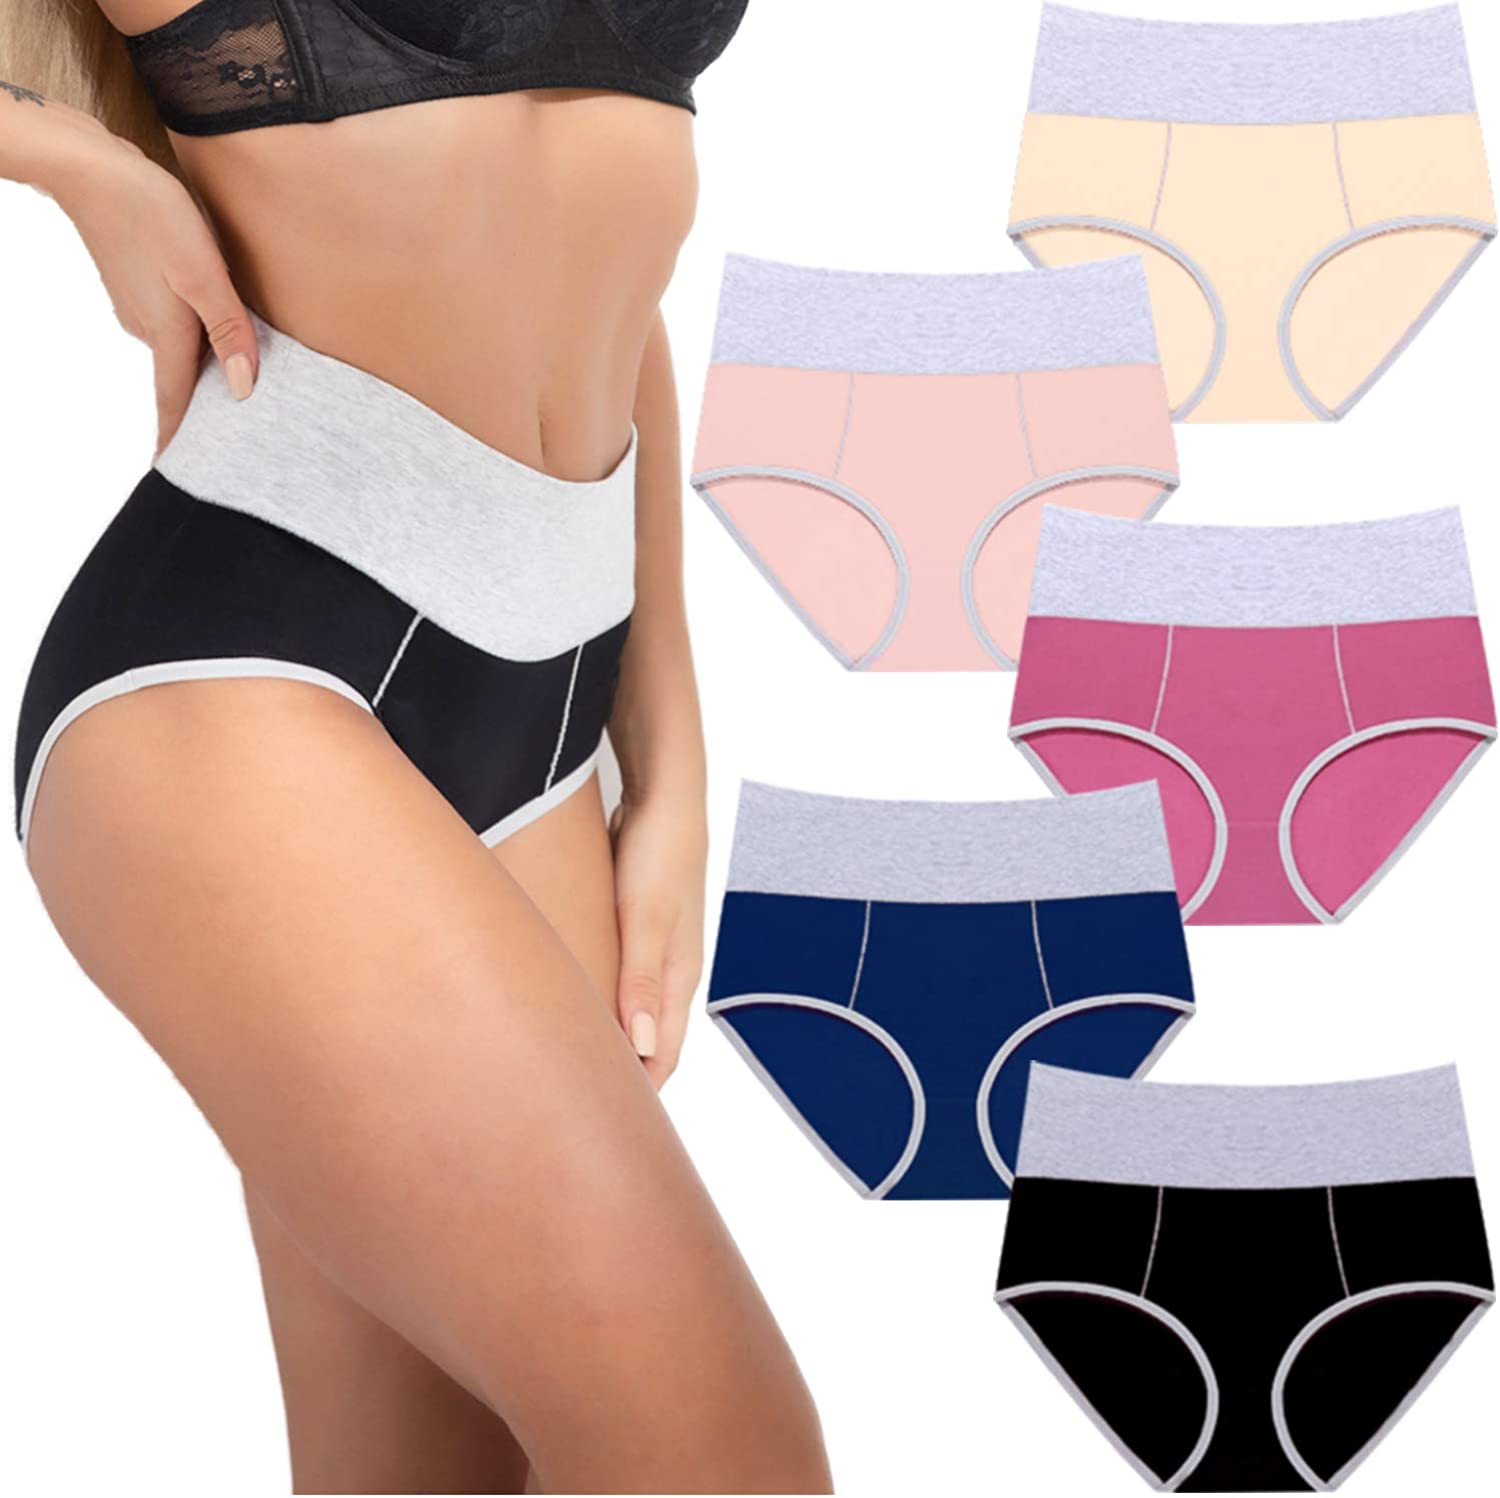 Sinophant Women High Waisted Cotton Underwear Max 57% OFF Briefs Max 77% OFF Ladies and